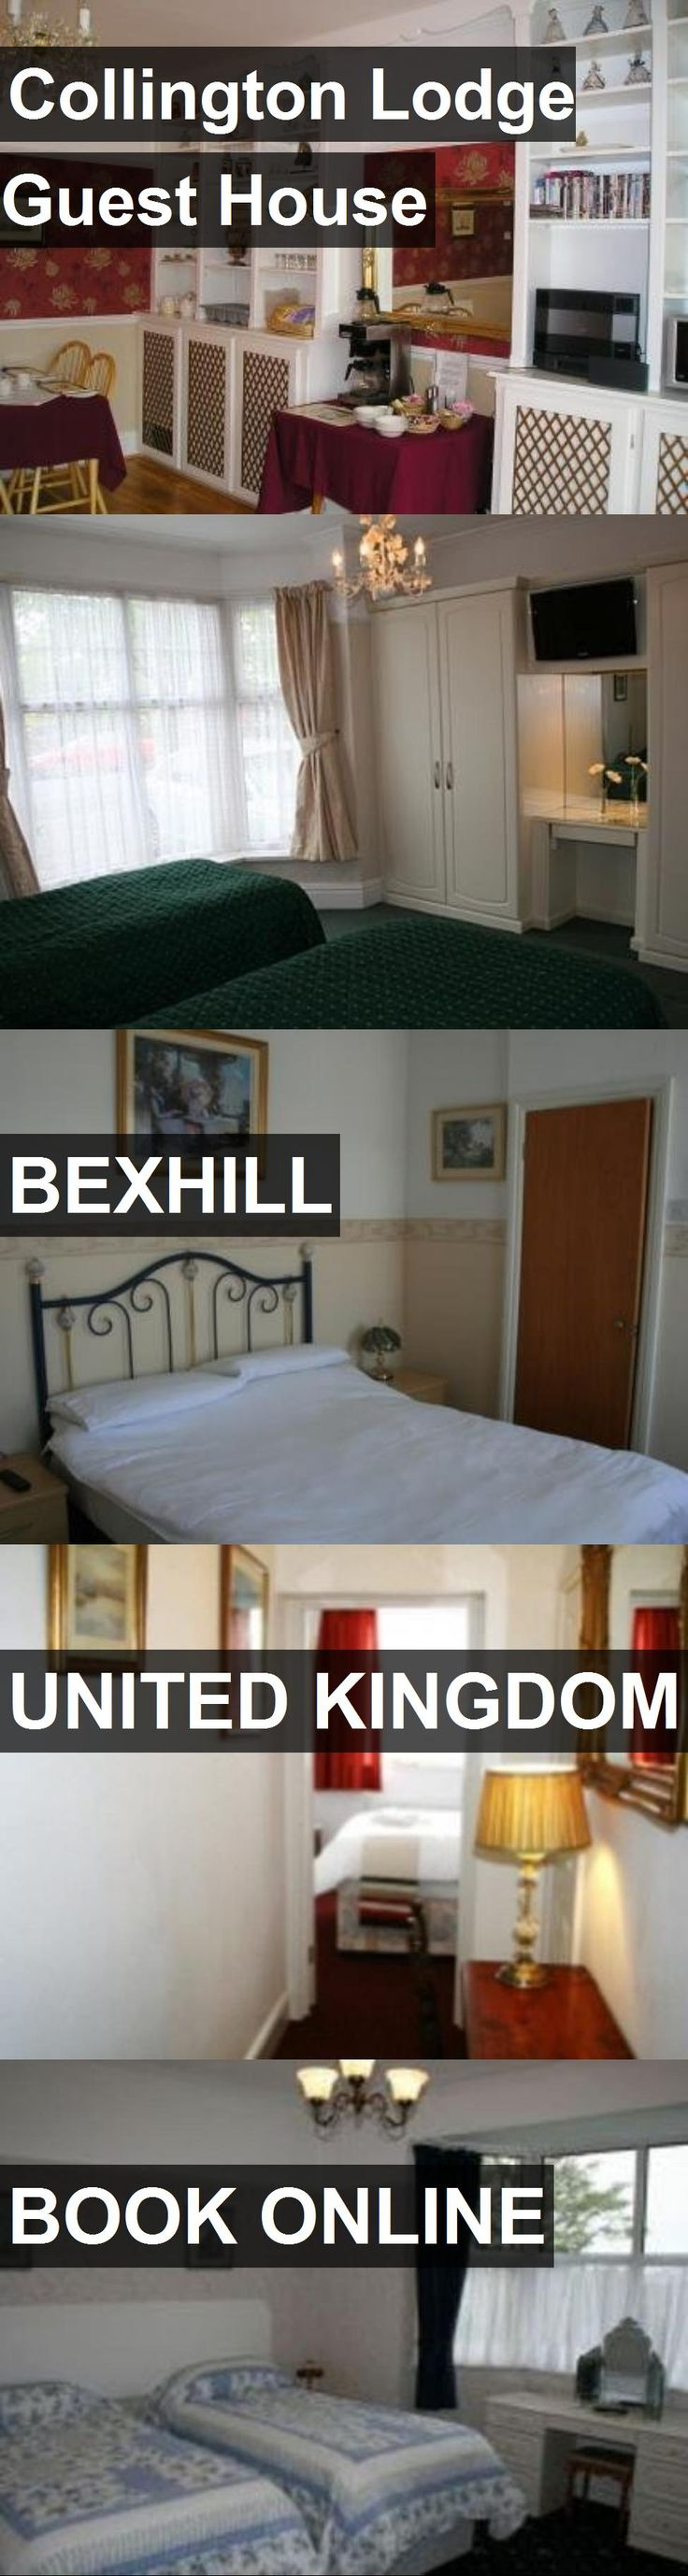 Hotel Collington Lodge Guest House in Bexhill, United Kingdom. For more information, photos, reviews and best prices please follow the link. #UnitedKingdom #Bexhill #hotel #travel #vacation